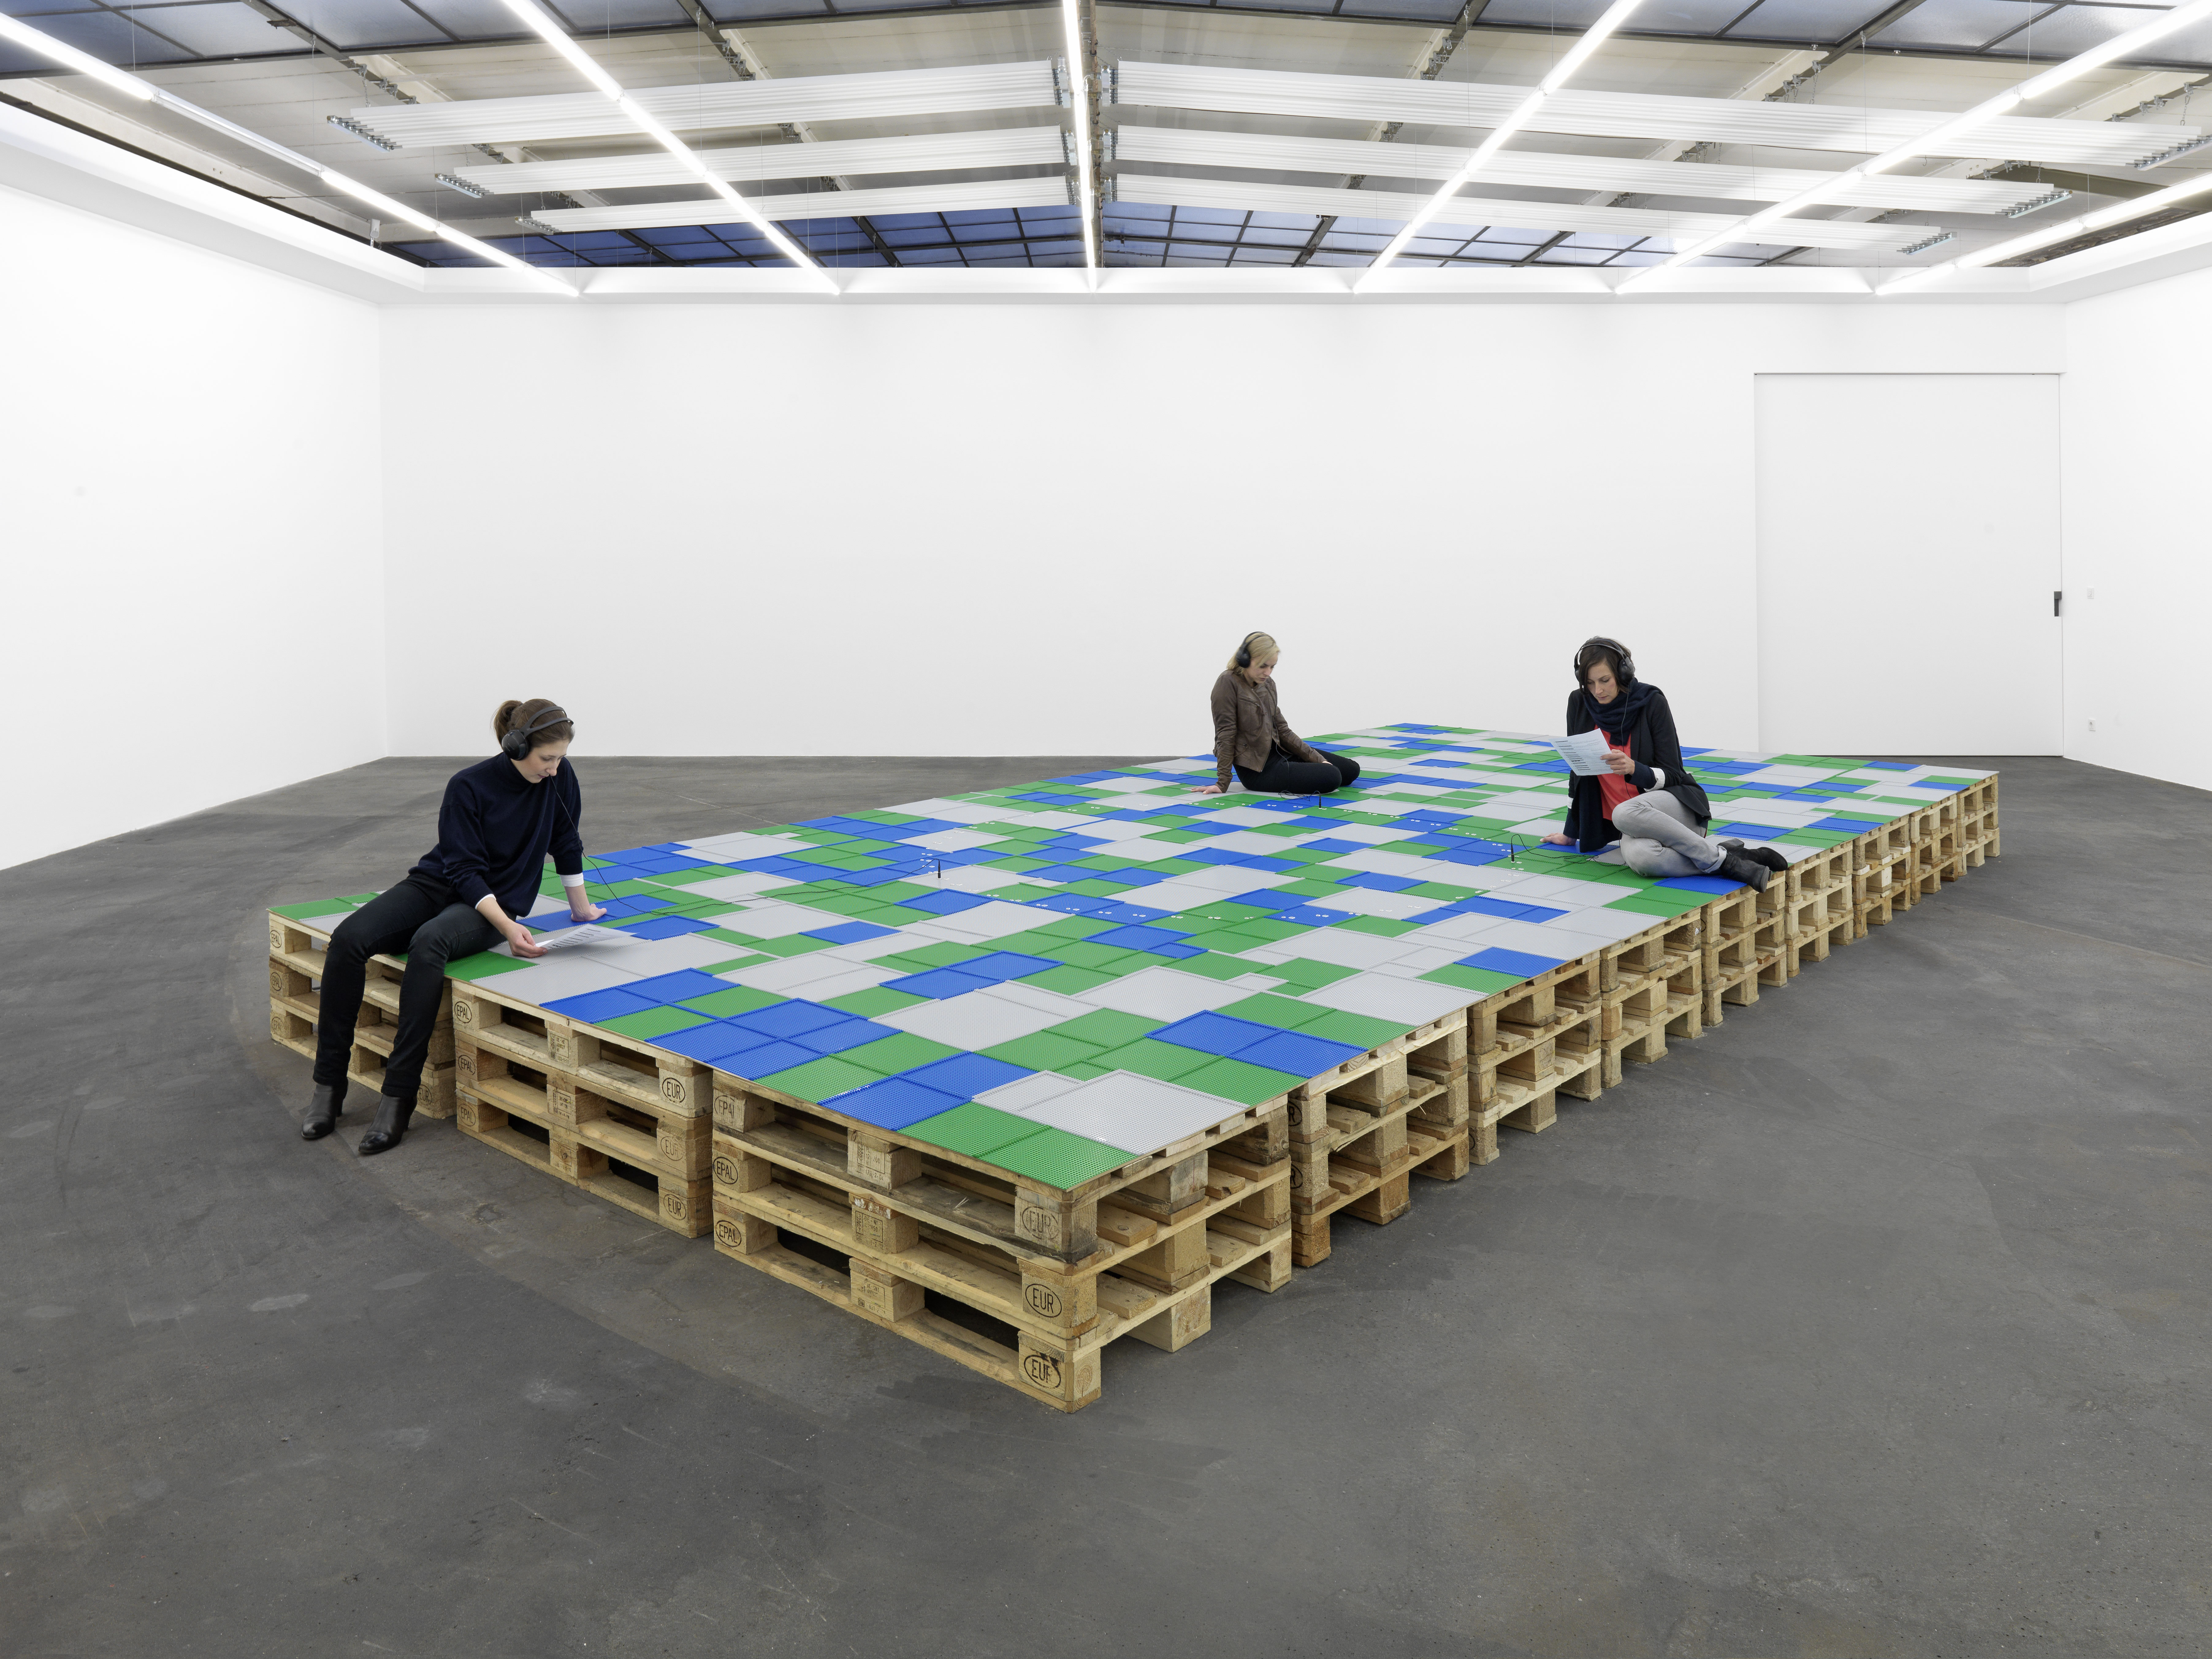 A couple of people sitting on a large mixed-media installation by Natascha Sadr Haghighian with blue, green and white-coloured Lego blocks covering wooden pallets that is stacked in the middle of a white-walled room